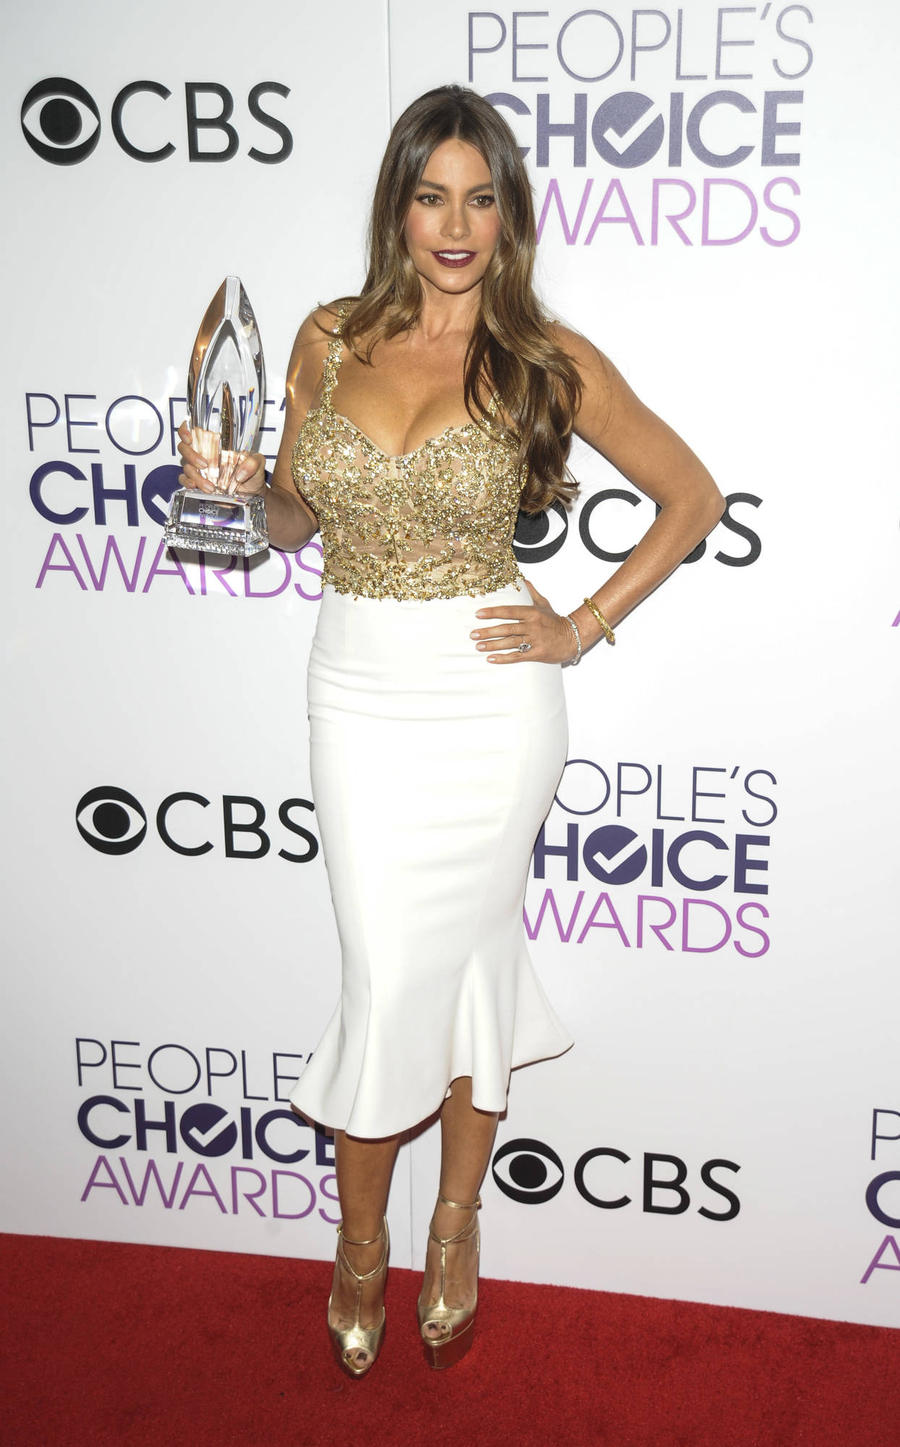 Sofia Vergara: 'What's Wrong With Being A Stereotype'